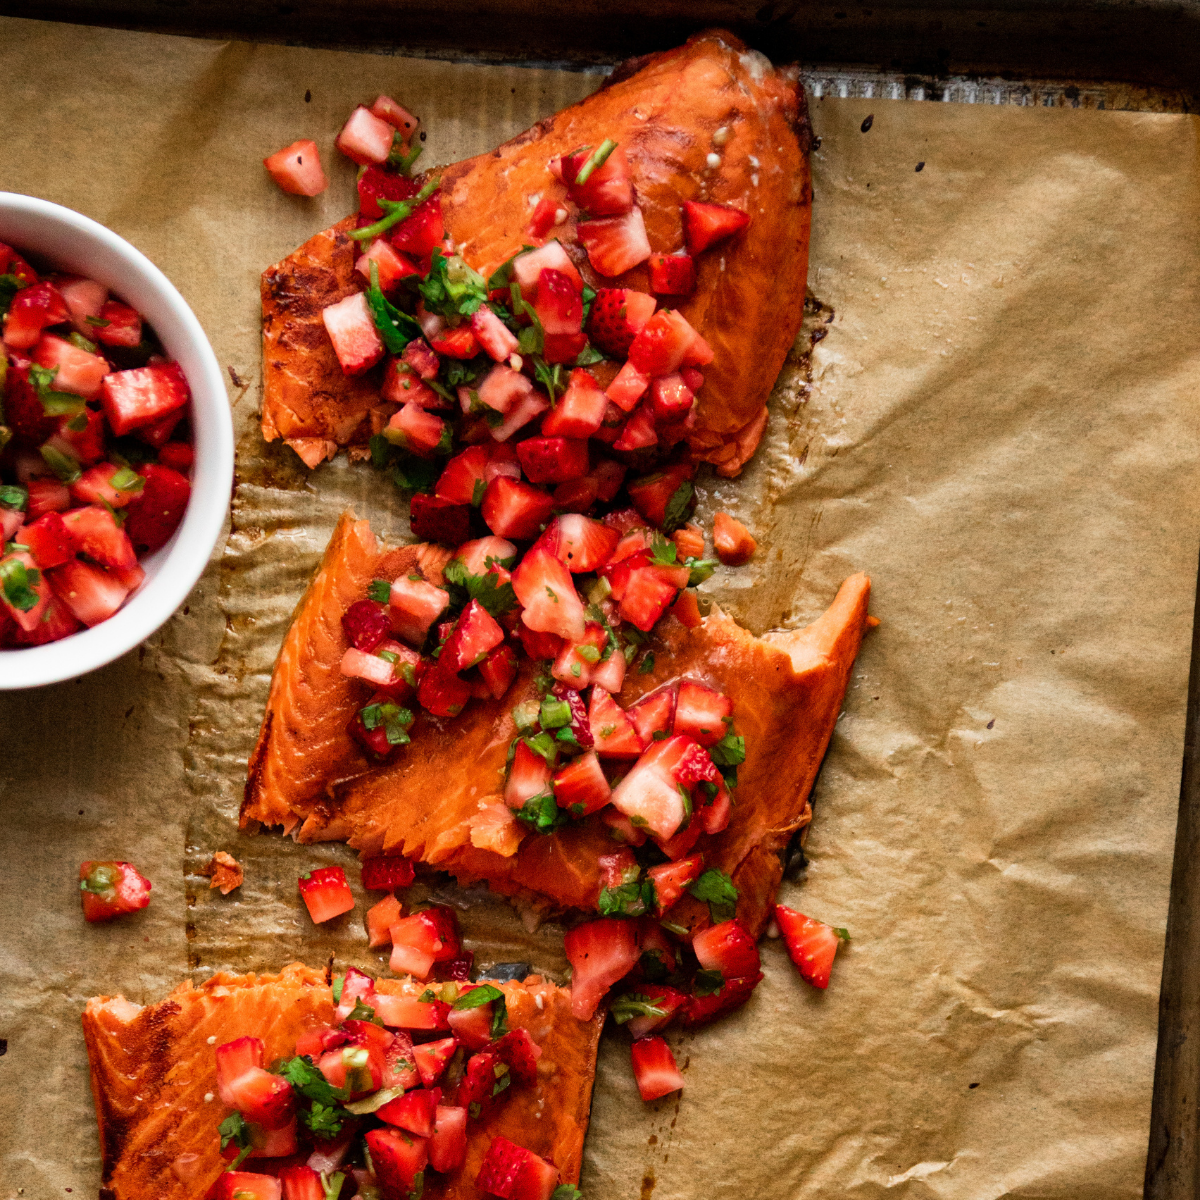 Salmon fillet topped with strawberry salsa on a baking sheet lined with brown parchment paper.